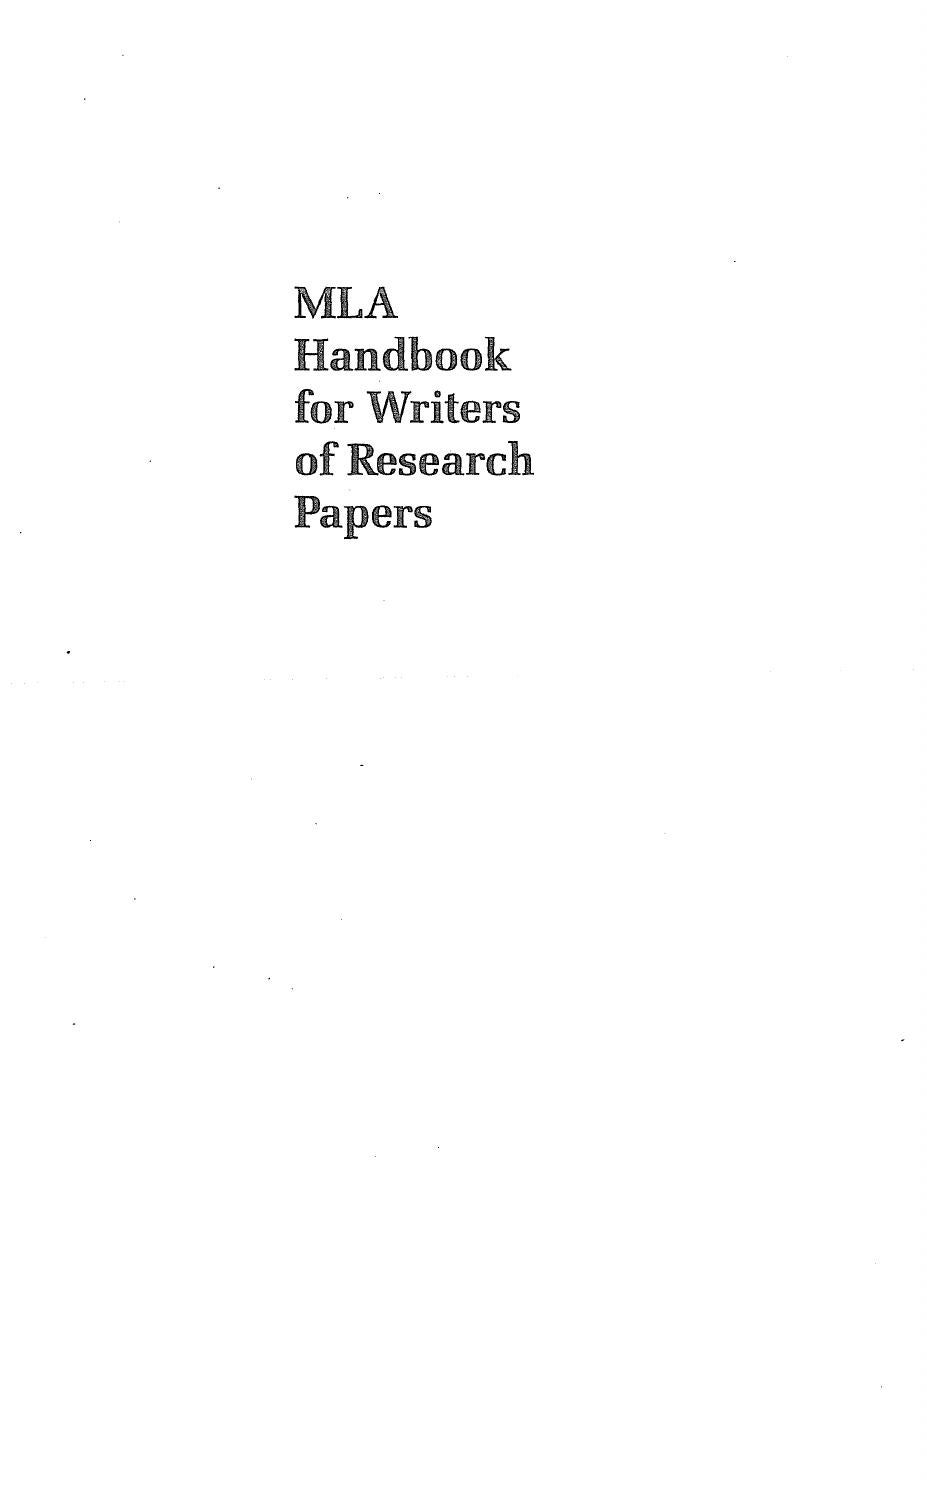 mla 7th edition research paper format Mla handbook for writers of research papers mla handbook, 7th edition mla – sample works cited 5.